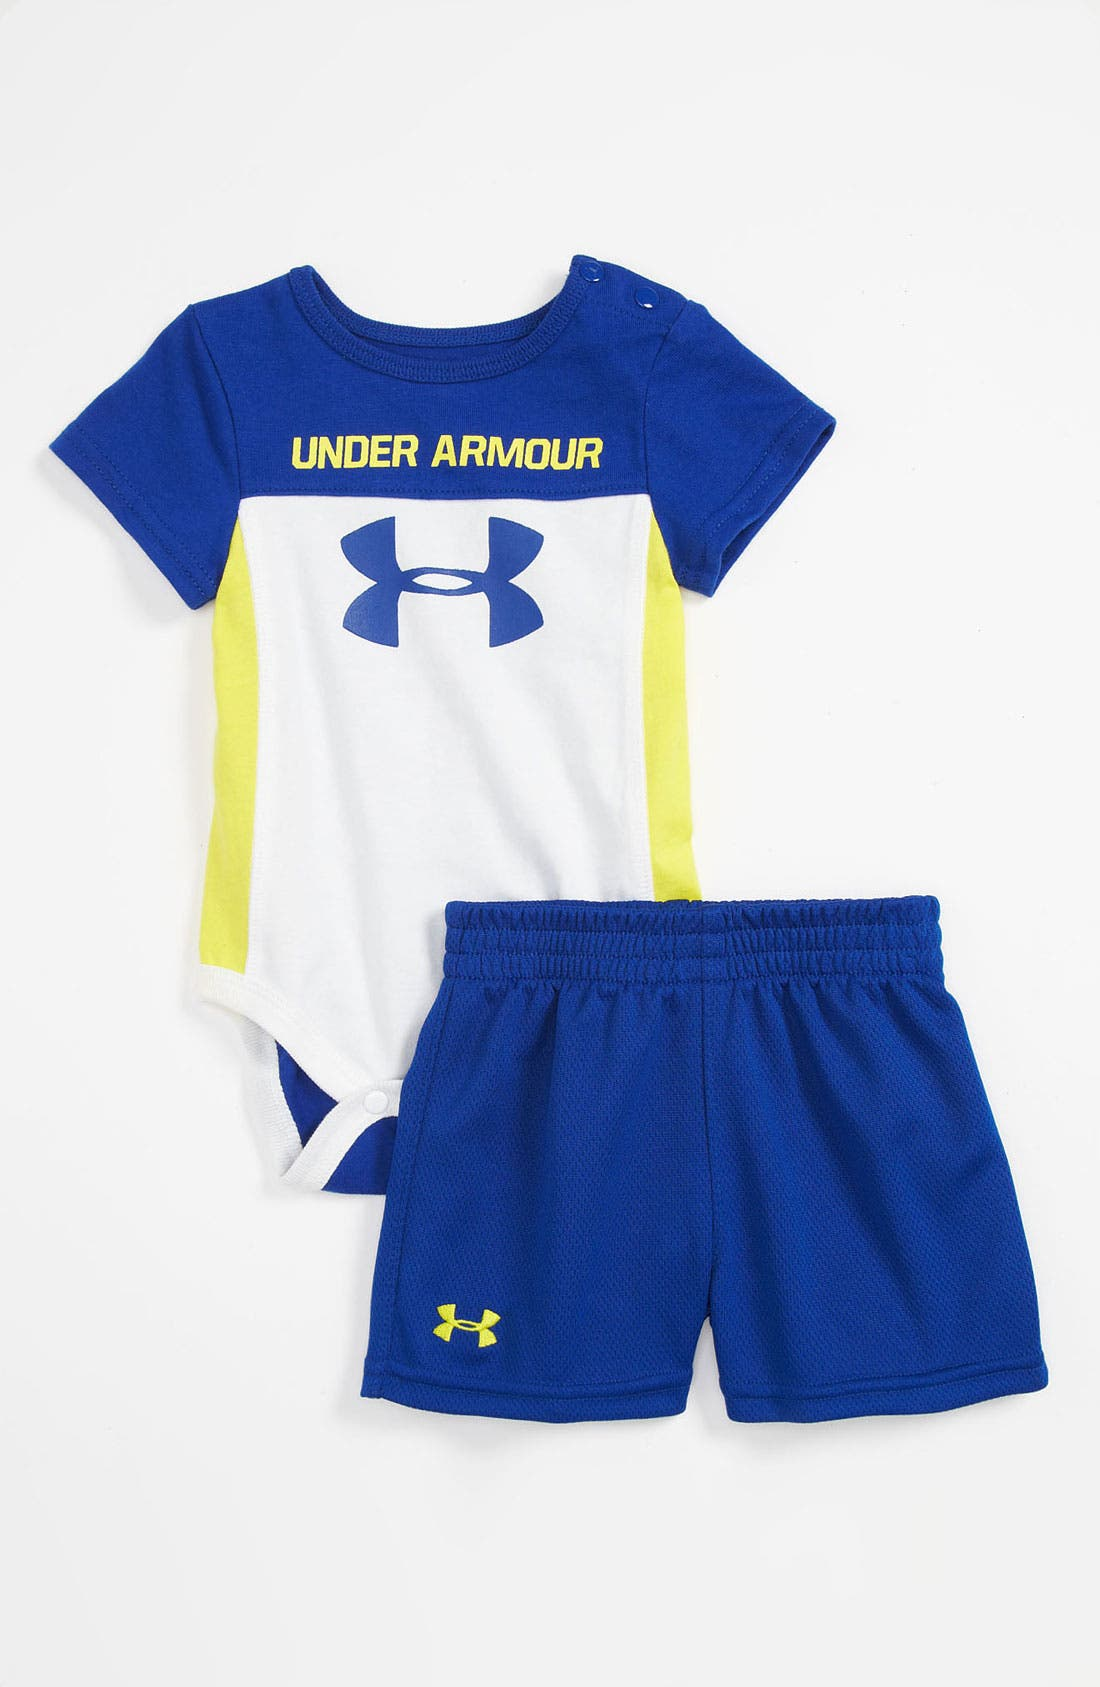 Main Image - Under Armour Bodysuit & Shorts (Infant)